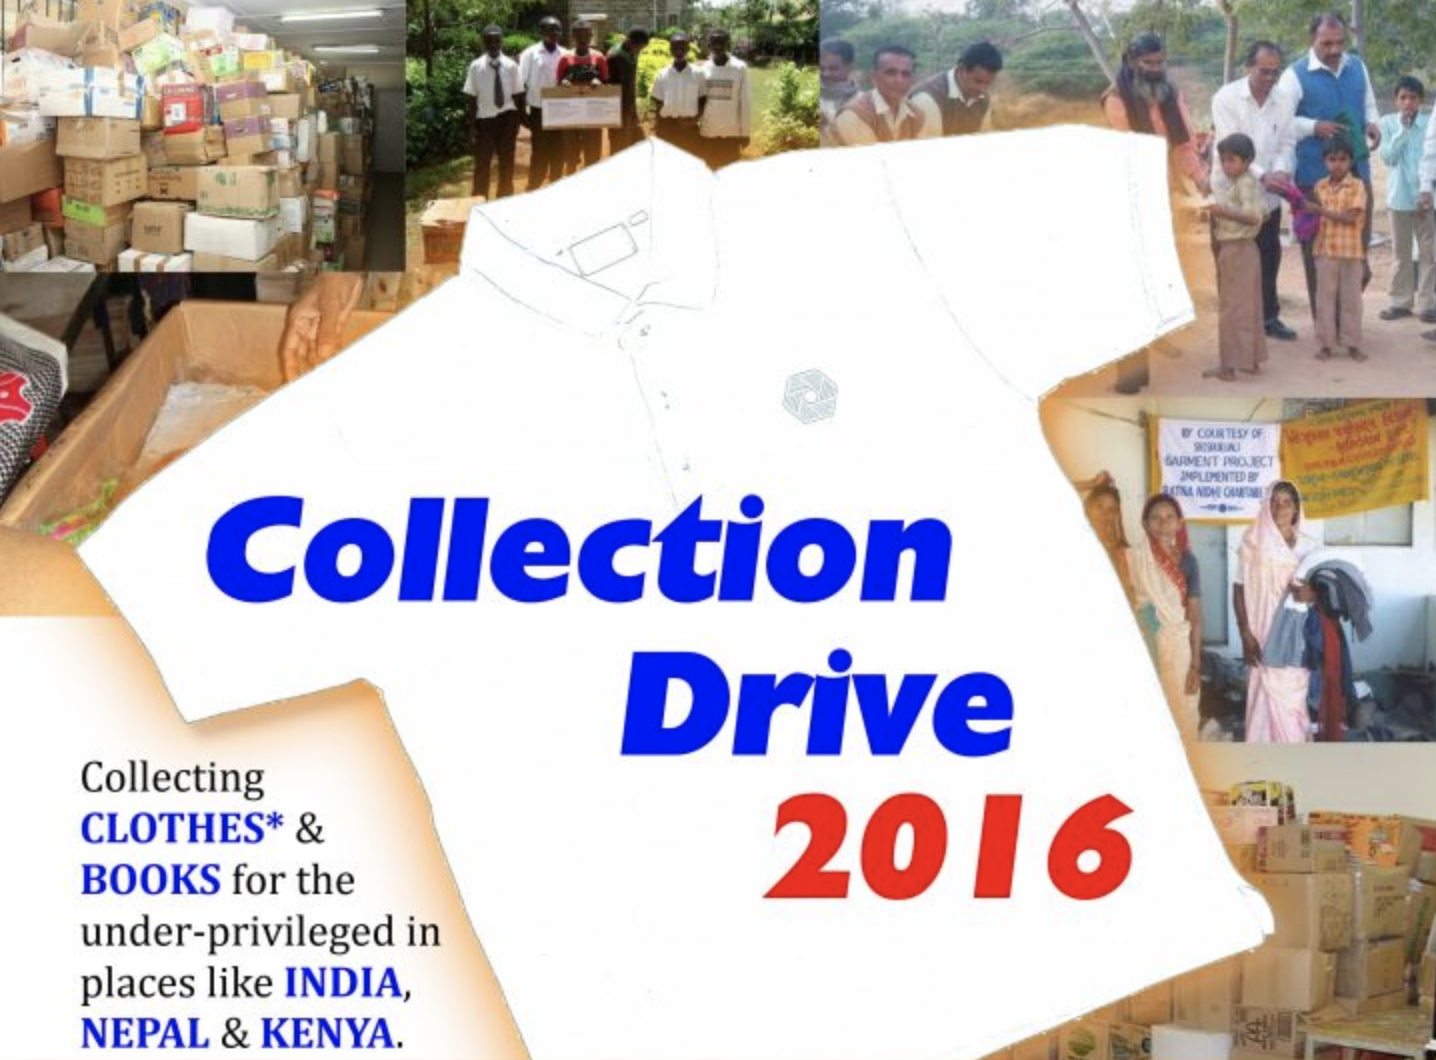 Clothes & Books Collection Drive 2016